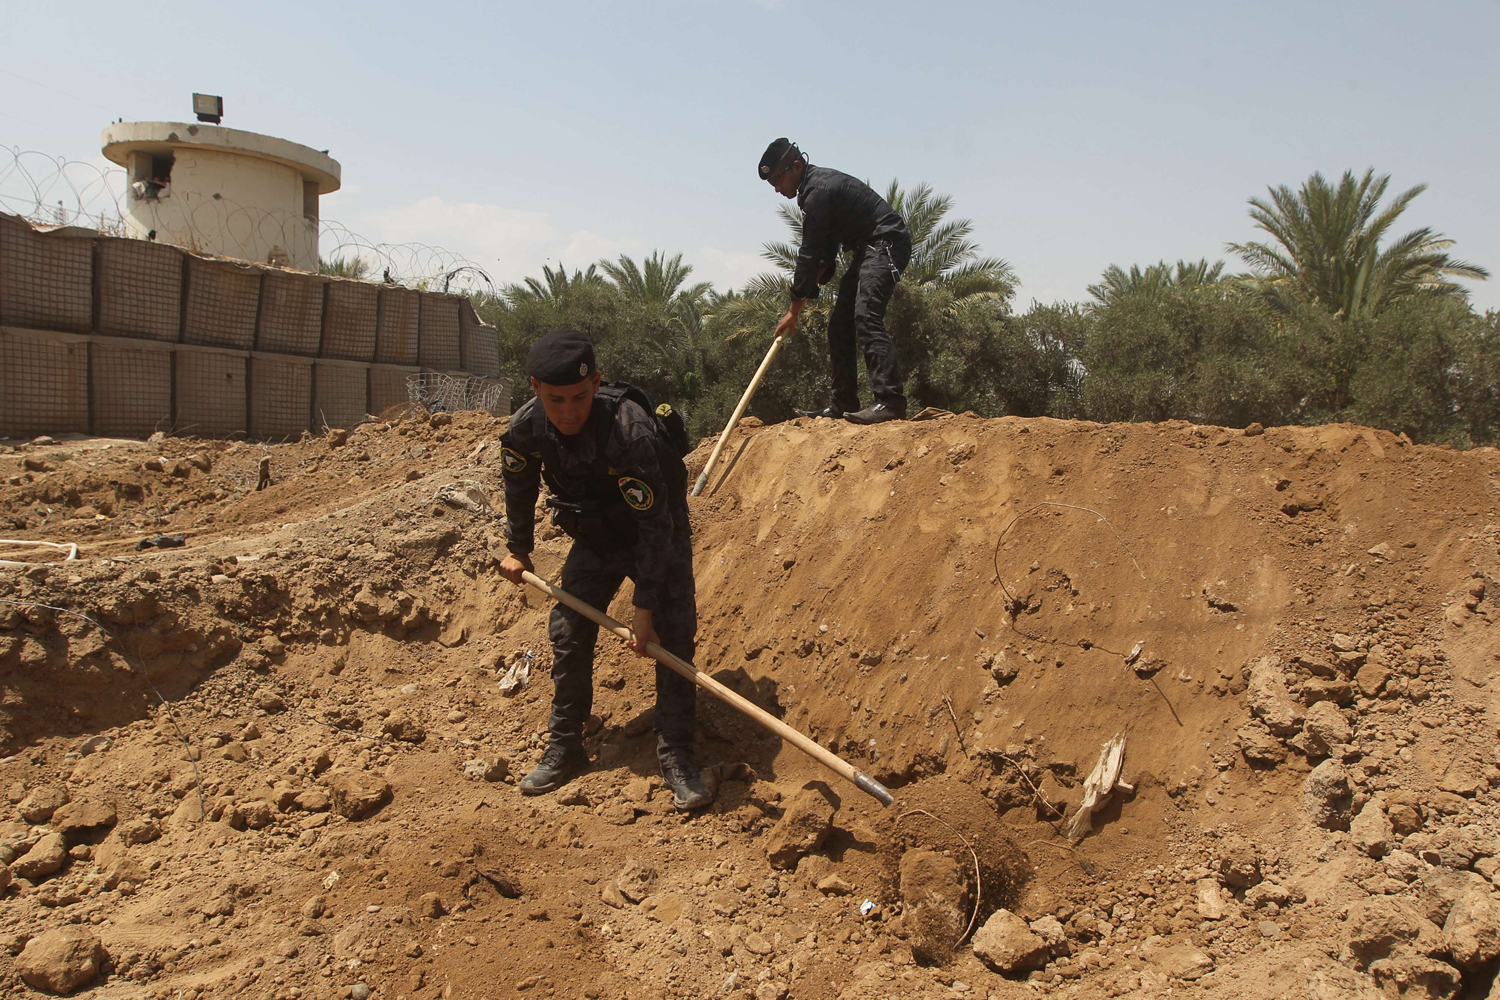 Iraqi policemen dig trenches at checkpoint in the Iraqi town of Taji, at the entrance of Baghdad, on June 13, as security forces are bolstering defenses in the capital.